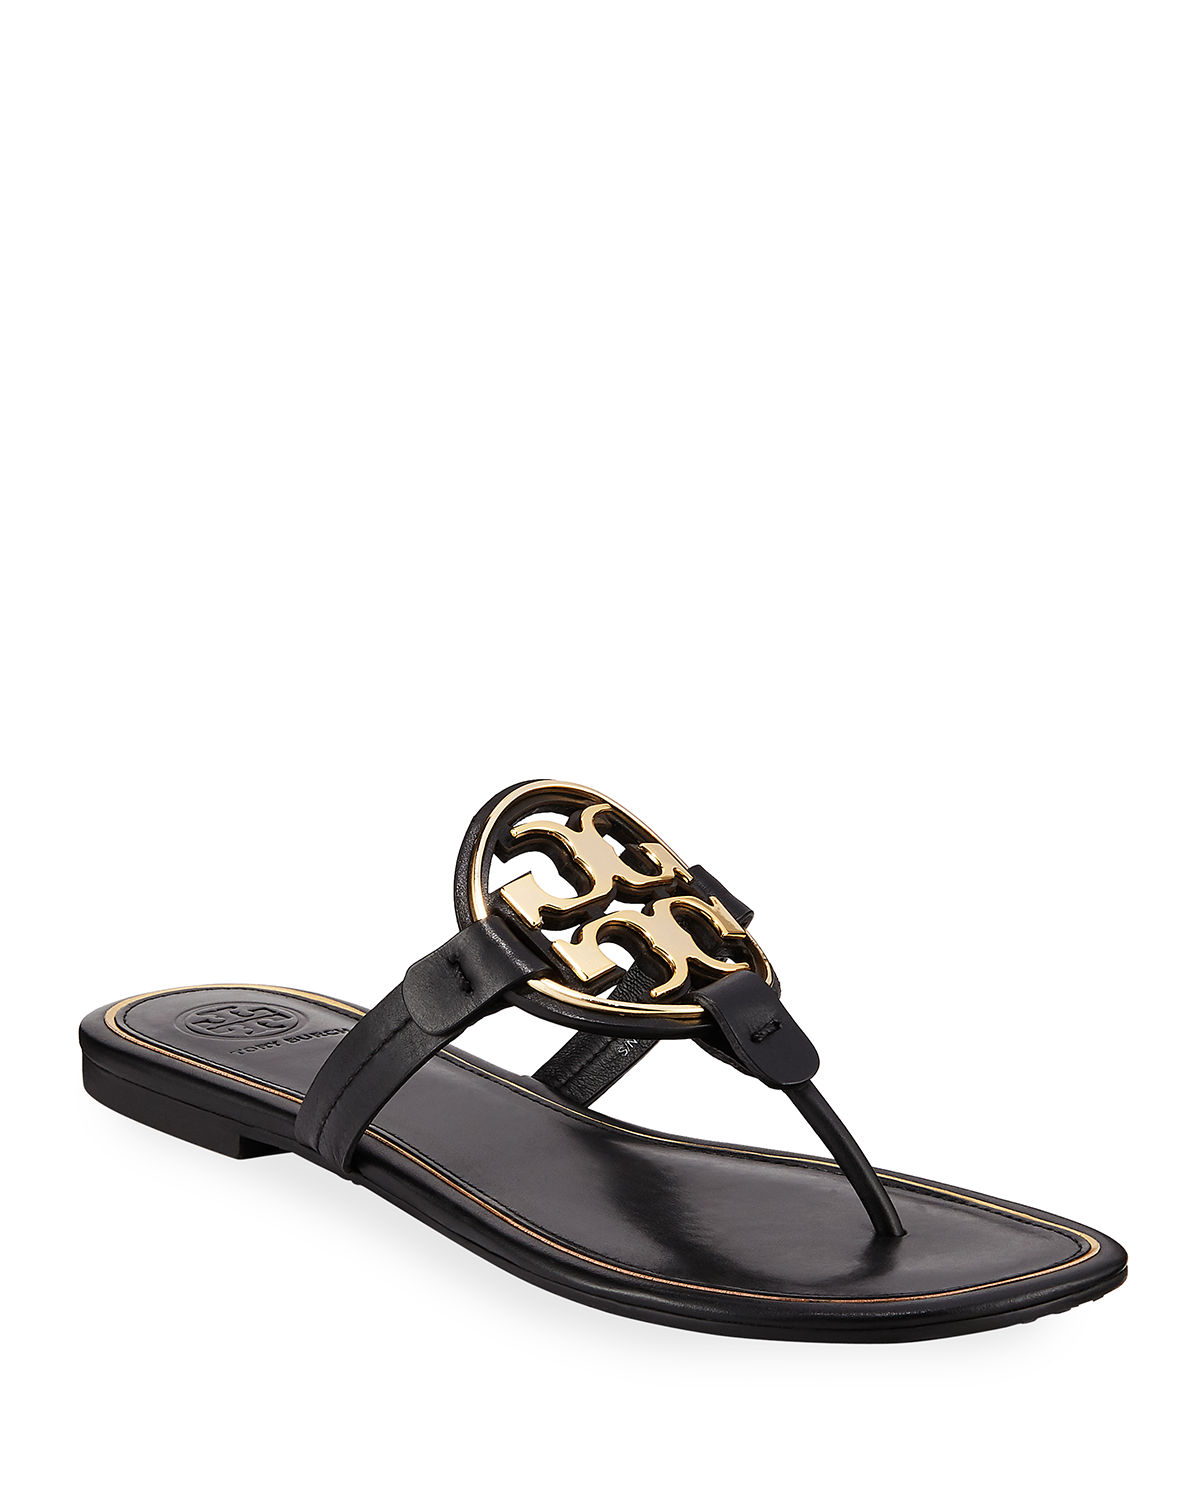 661cd2605 Tory Burch Miller Flat Metal Logo Slide Sandals